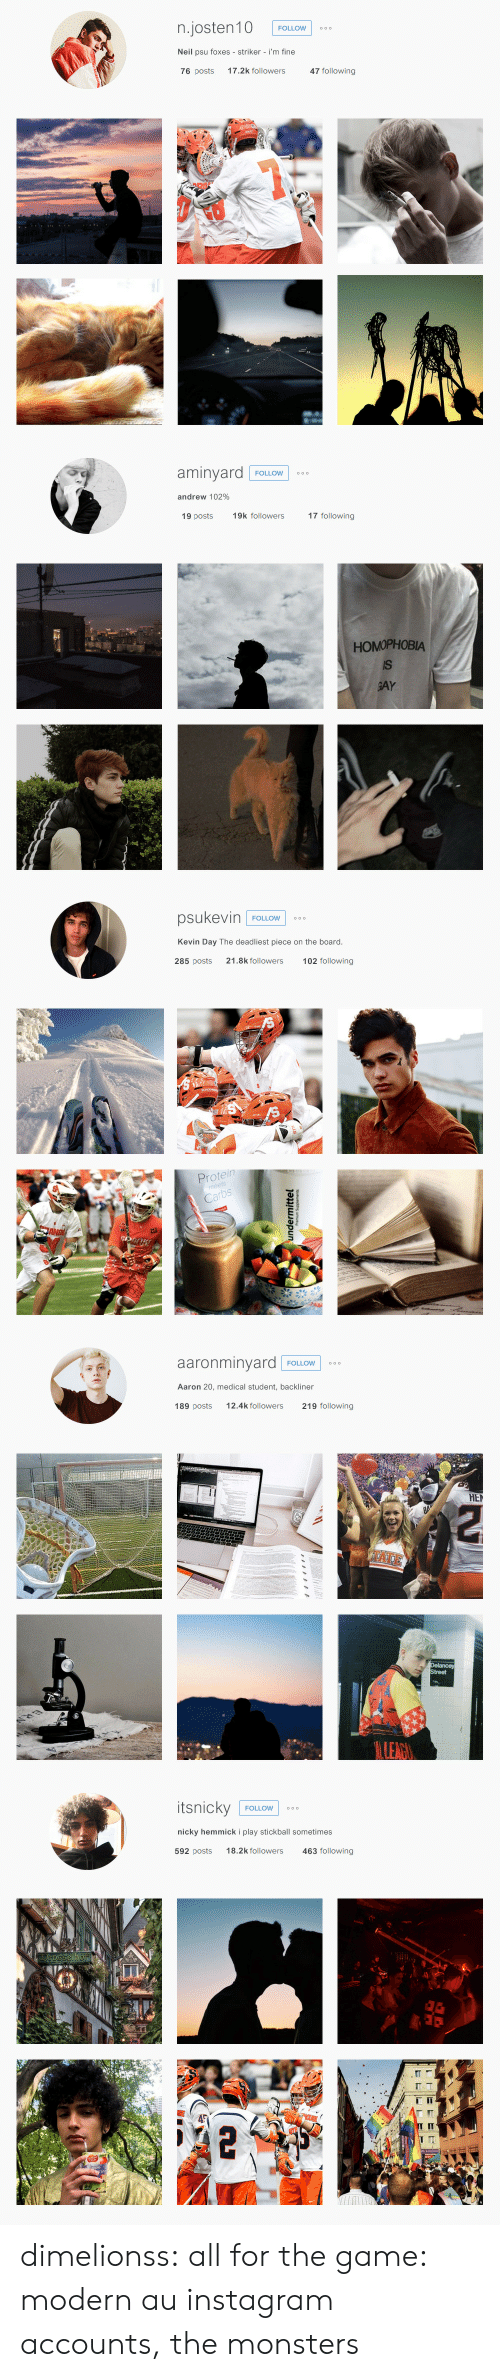 Instagram, Protein, and Target: n.josten10  FOLLOW  o o o  Neil psu foxes striker i'm fine  76 posts  17.2k followers  47 following   aminyard  FOLLOW  O o o  andrew 102%  19 posts  19k followers  17 following  HOMOPHOBIA  IS  GAY   psukevin  FOLLOW  o oo  Kevin Day The deadliest piece on the board.  285 posts  21.8k followers  102 following  Protein  meets  Carbs  SANG  undermittel   aaronminyard  O o o  FOLLOW  Aaron 20, medical student, backliner  219 following  12.4k followers  189 posts  HE  A:  ADOS  Delancey  Street  LEAGY   itsnicky  FOLLOW  o o o  nicky hemmick i play stickball sometimes  18.2k followers  592 posts  463 following  rosselbb dimelionss:   all for the game: modern au instagram accounts, the monsters